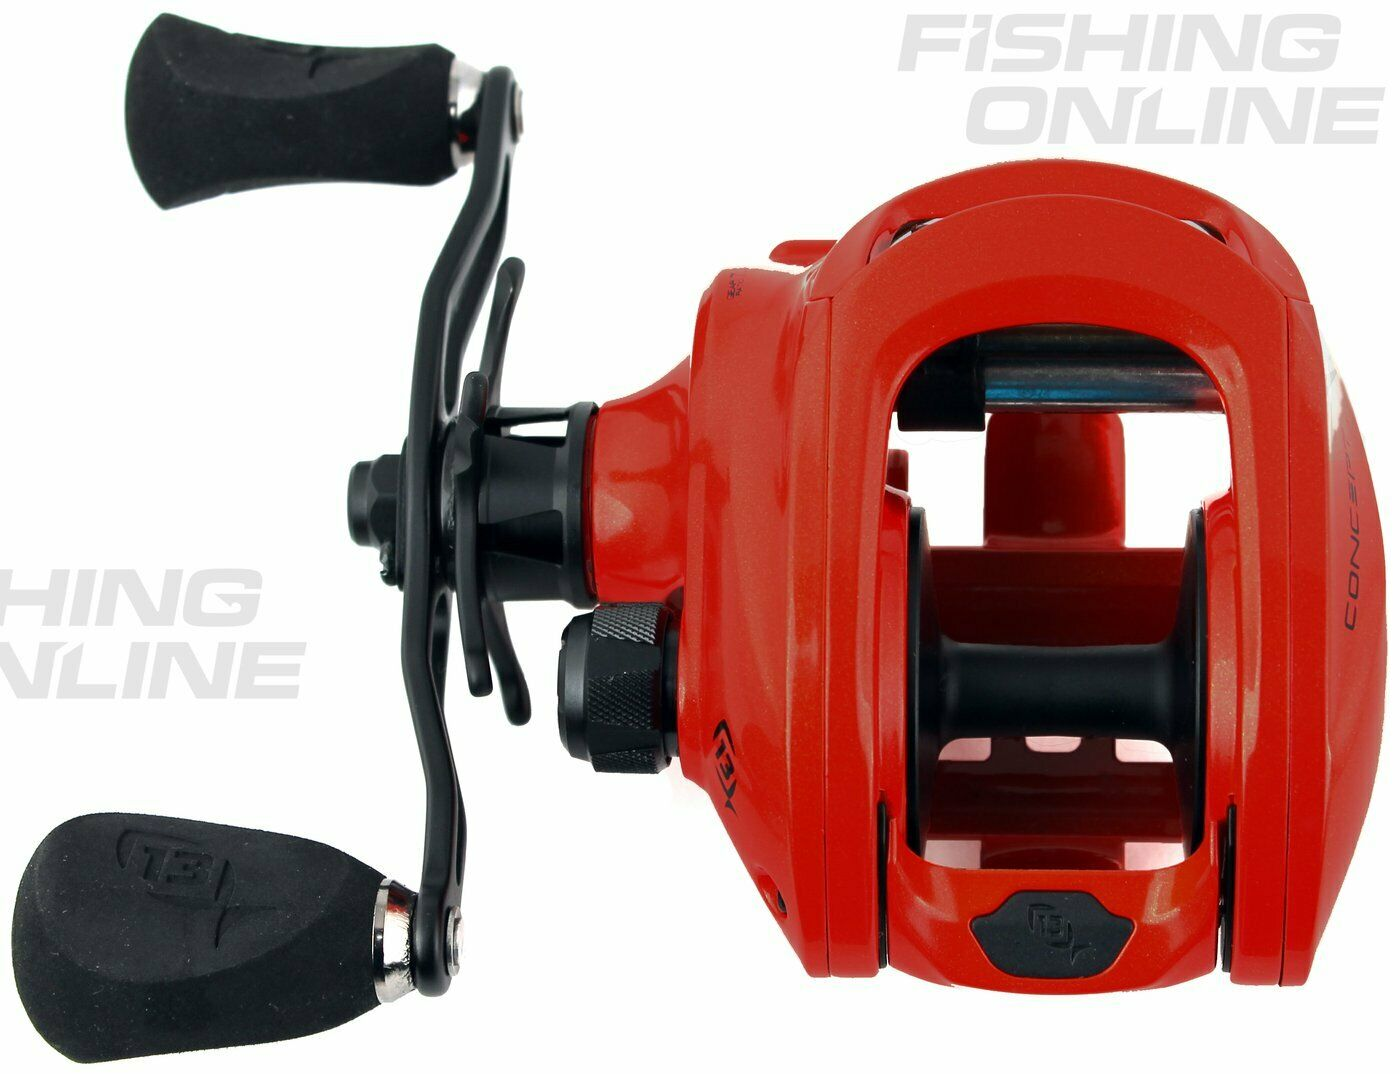 13 Fishing Concept Z Left Handed 7:3:1 Gear Ratio